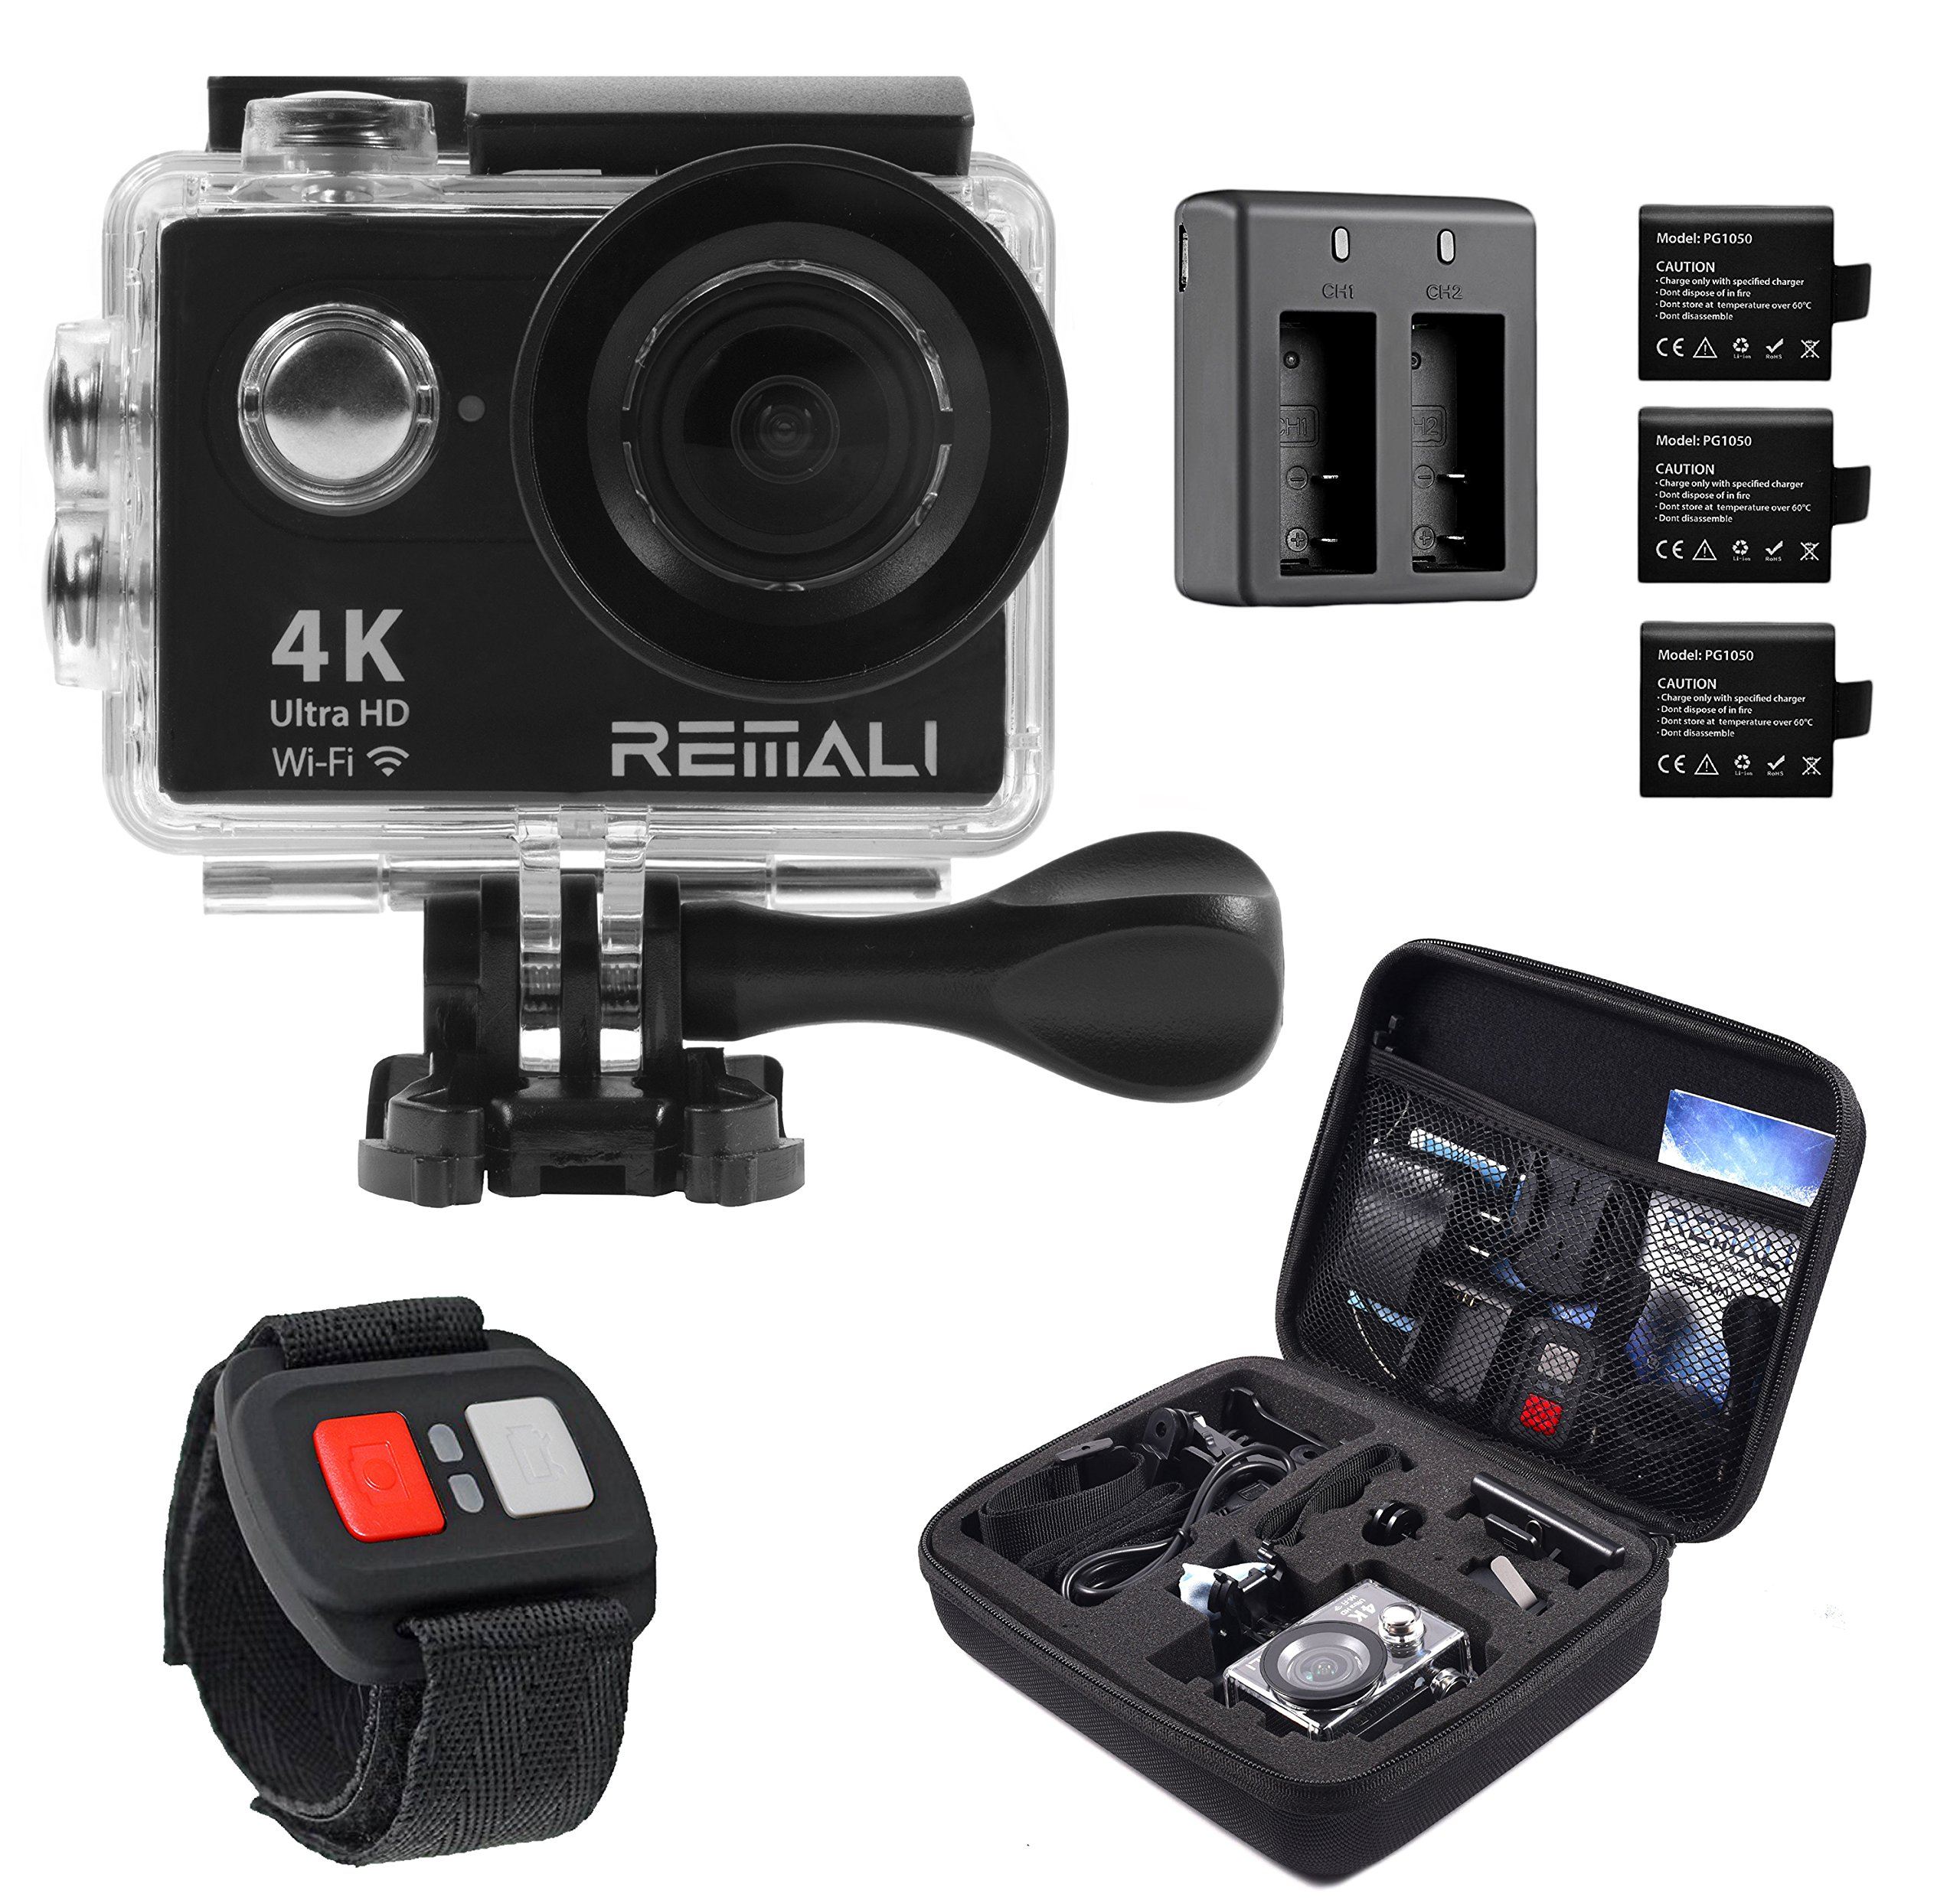 4K Sports Action Camera by REMALI, The Best Action Camera Package Available ON Amazon - Carrying Case, 2 Extra Batteries, Dual Battery Charger, Remote Control, 19 Mounts and Accessories!! Buy Now! by REMALI